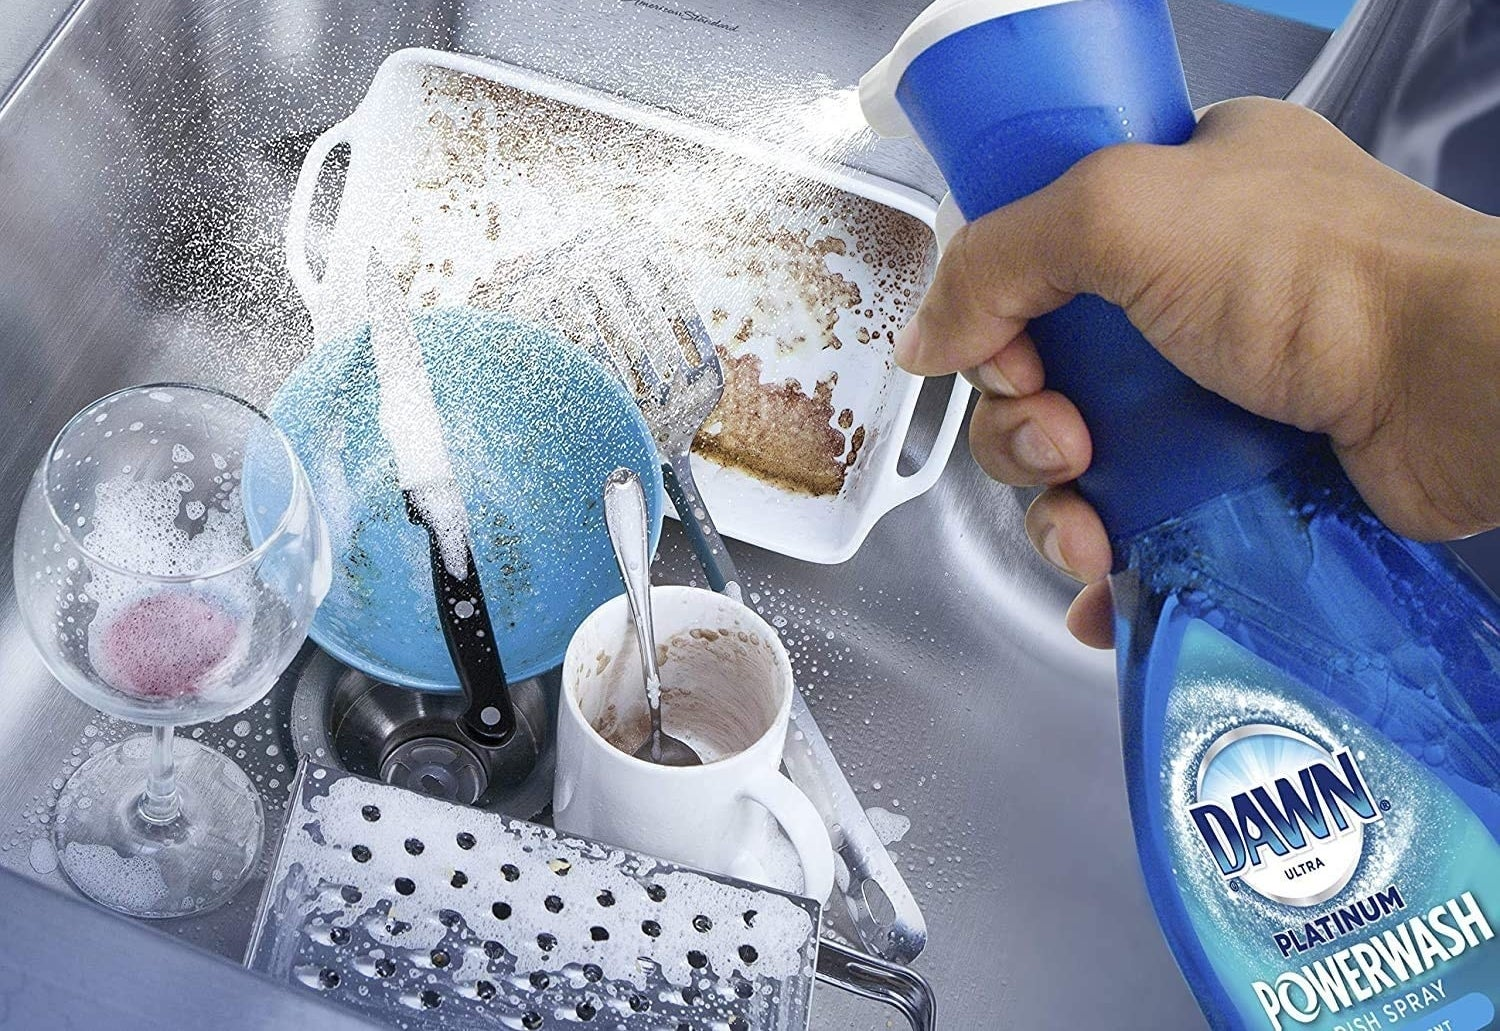 person spraying a pile of dishes